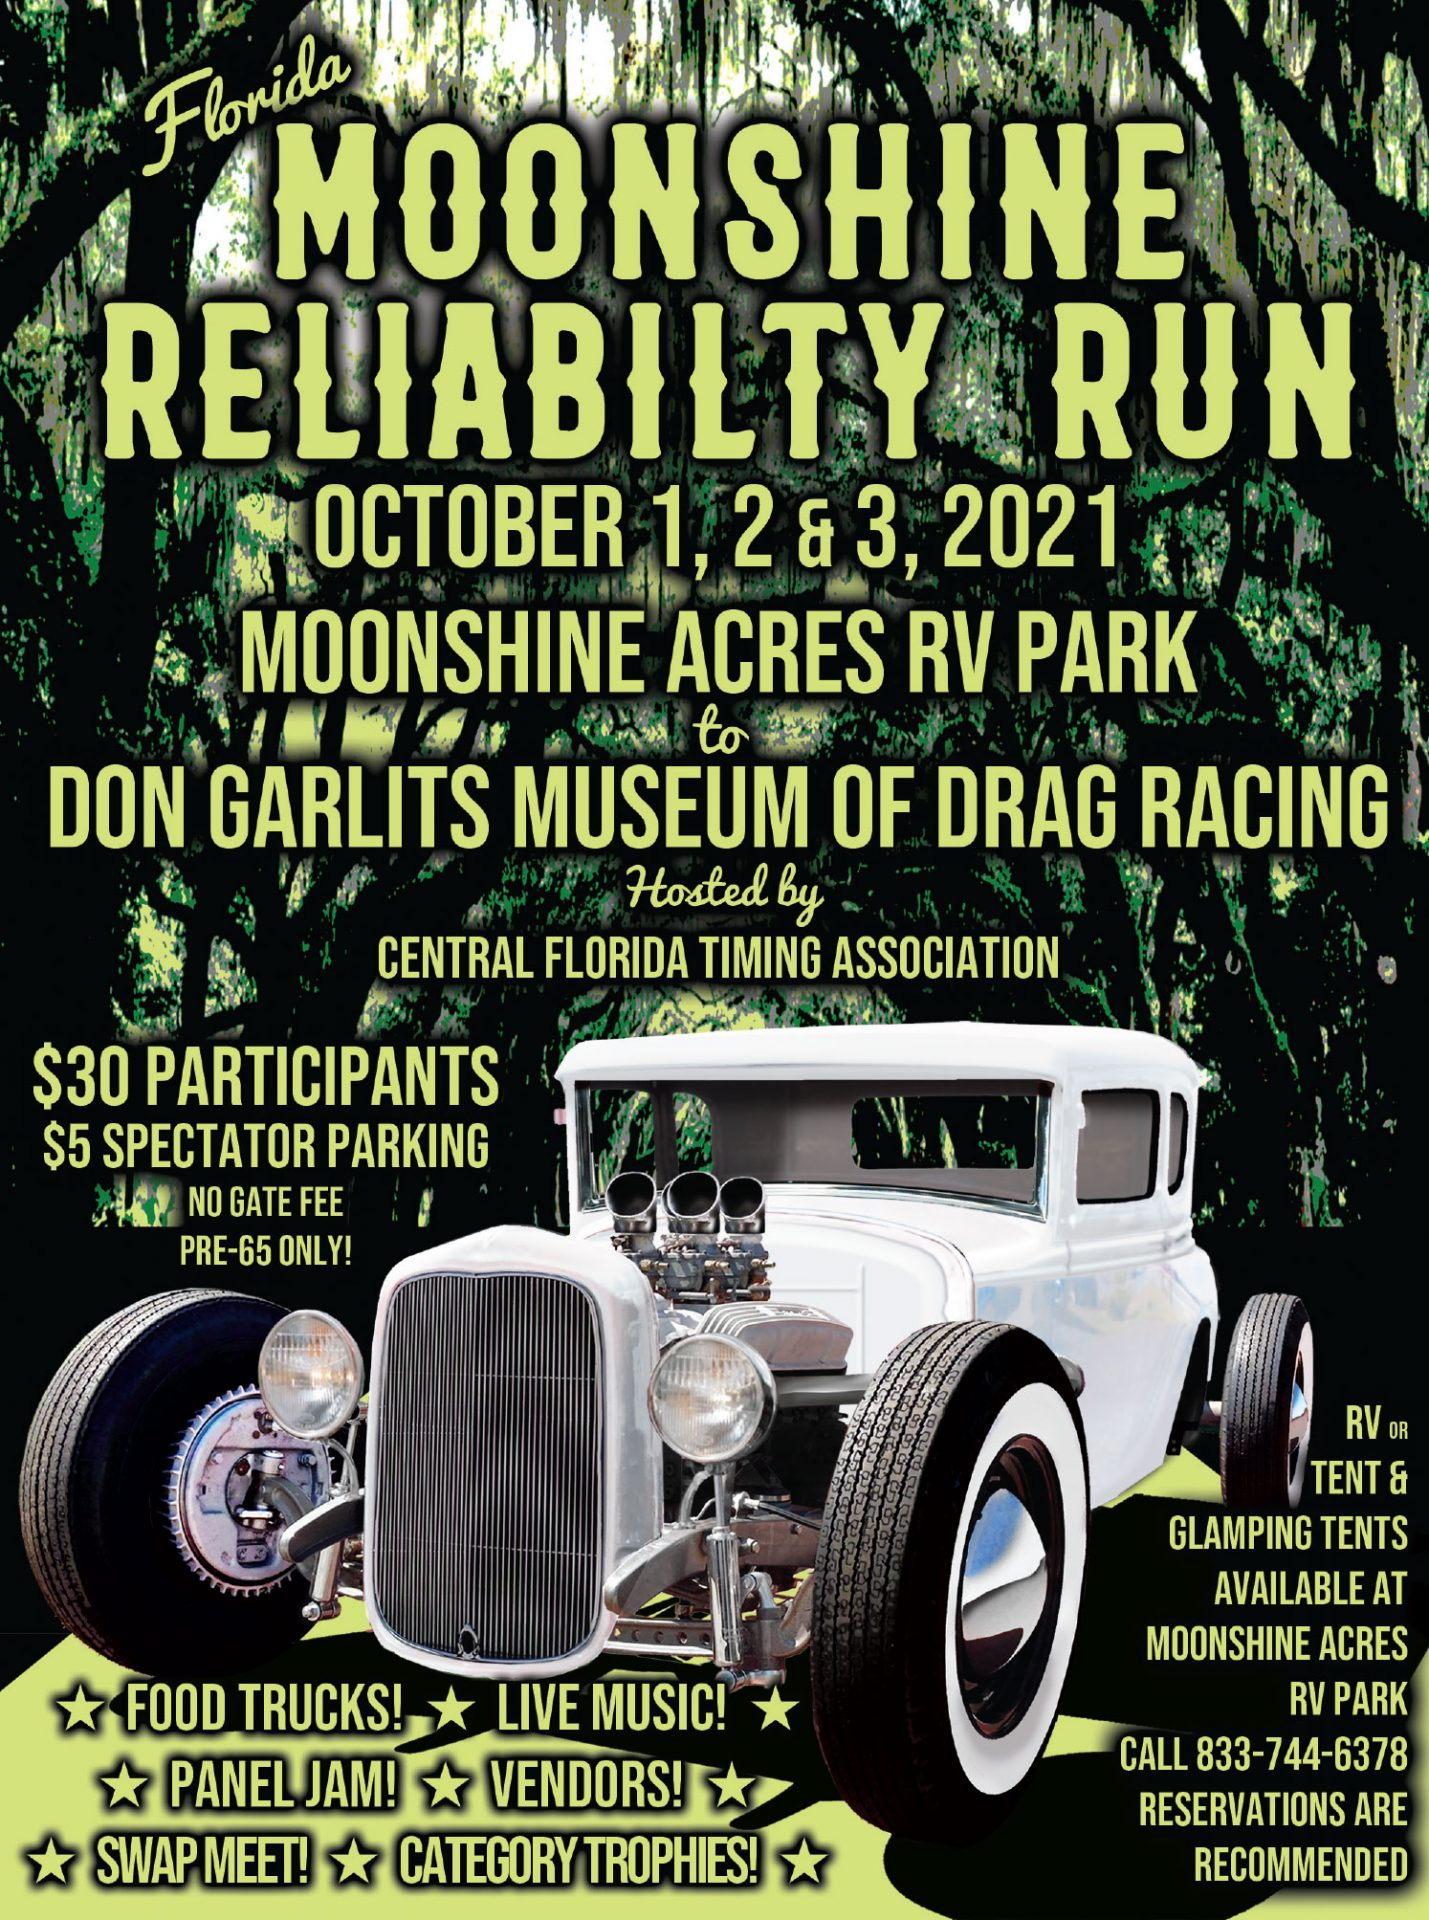 Moonshine Reliability Run Car Show & Camp Out Schedule